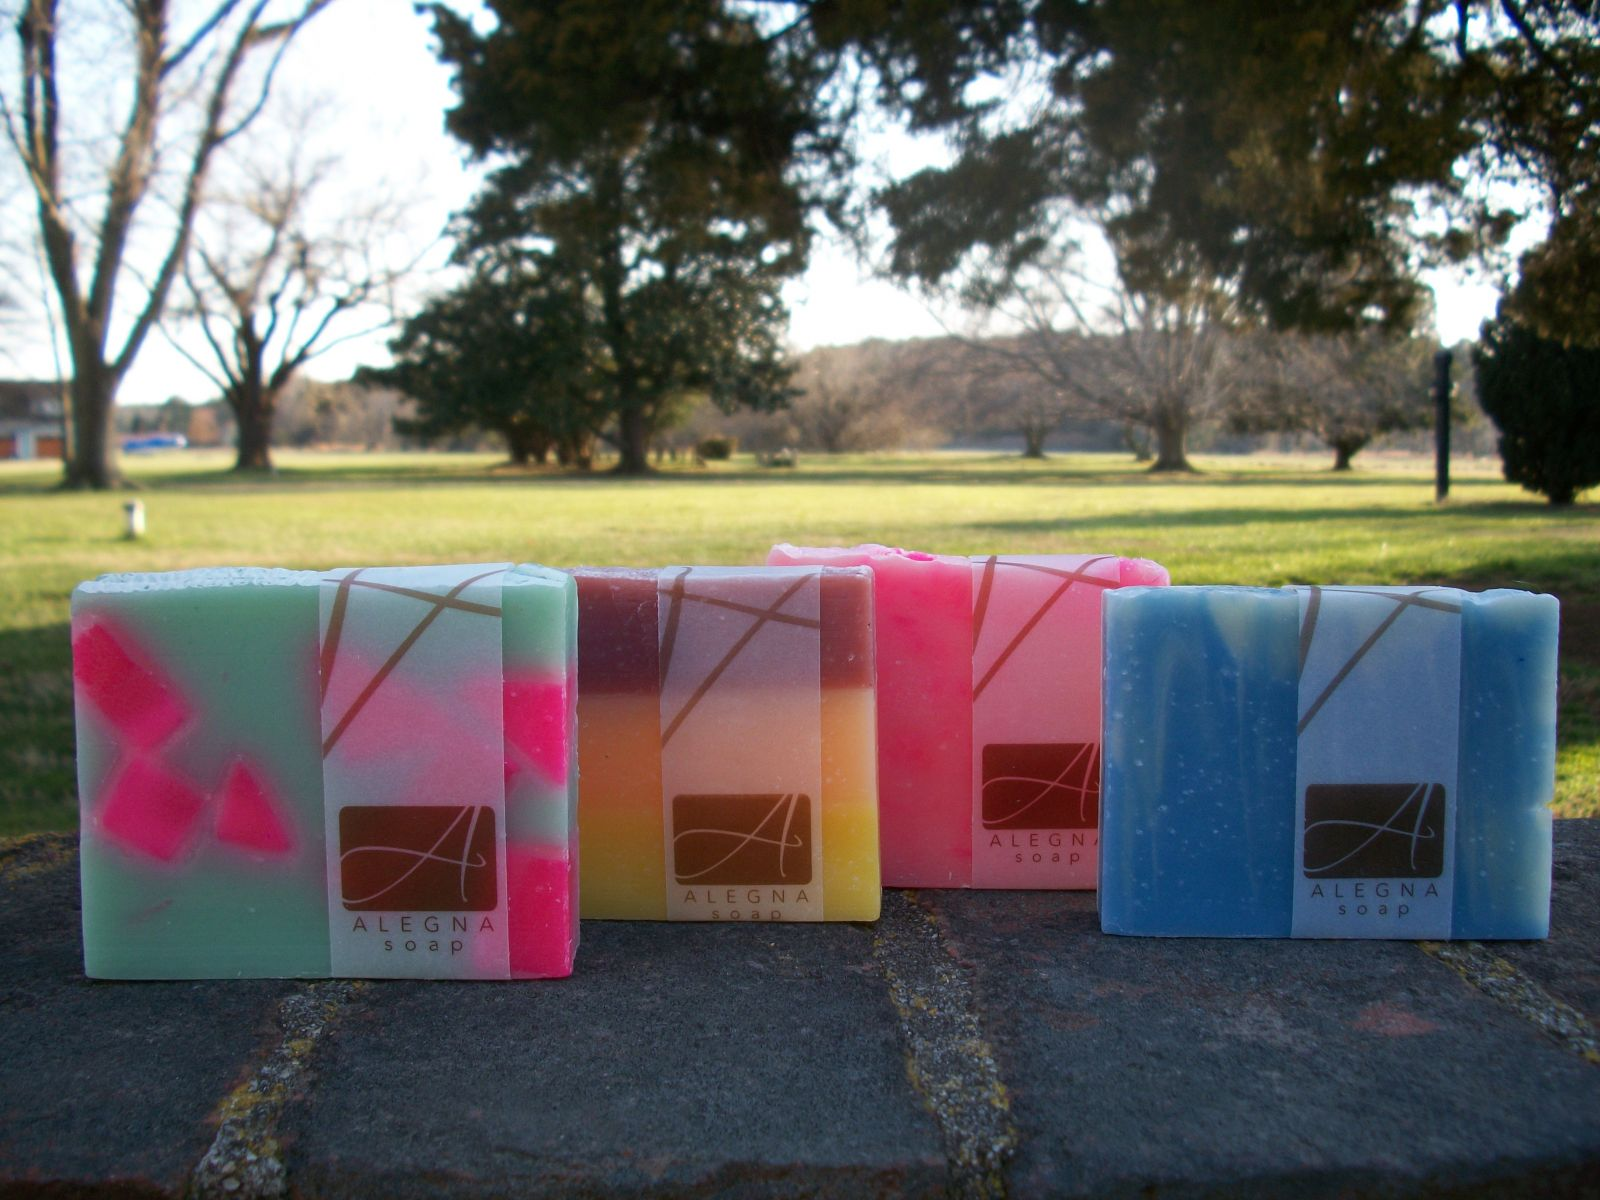 Gone with the Wind, I mean Handcrafted  Soap